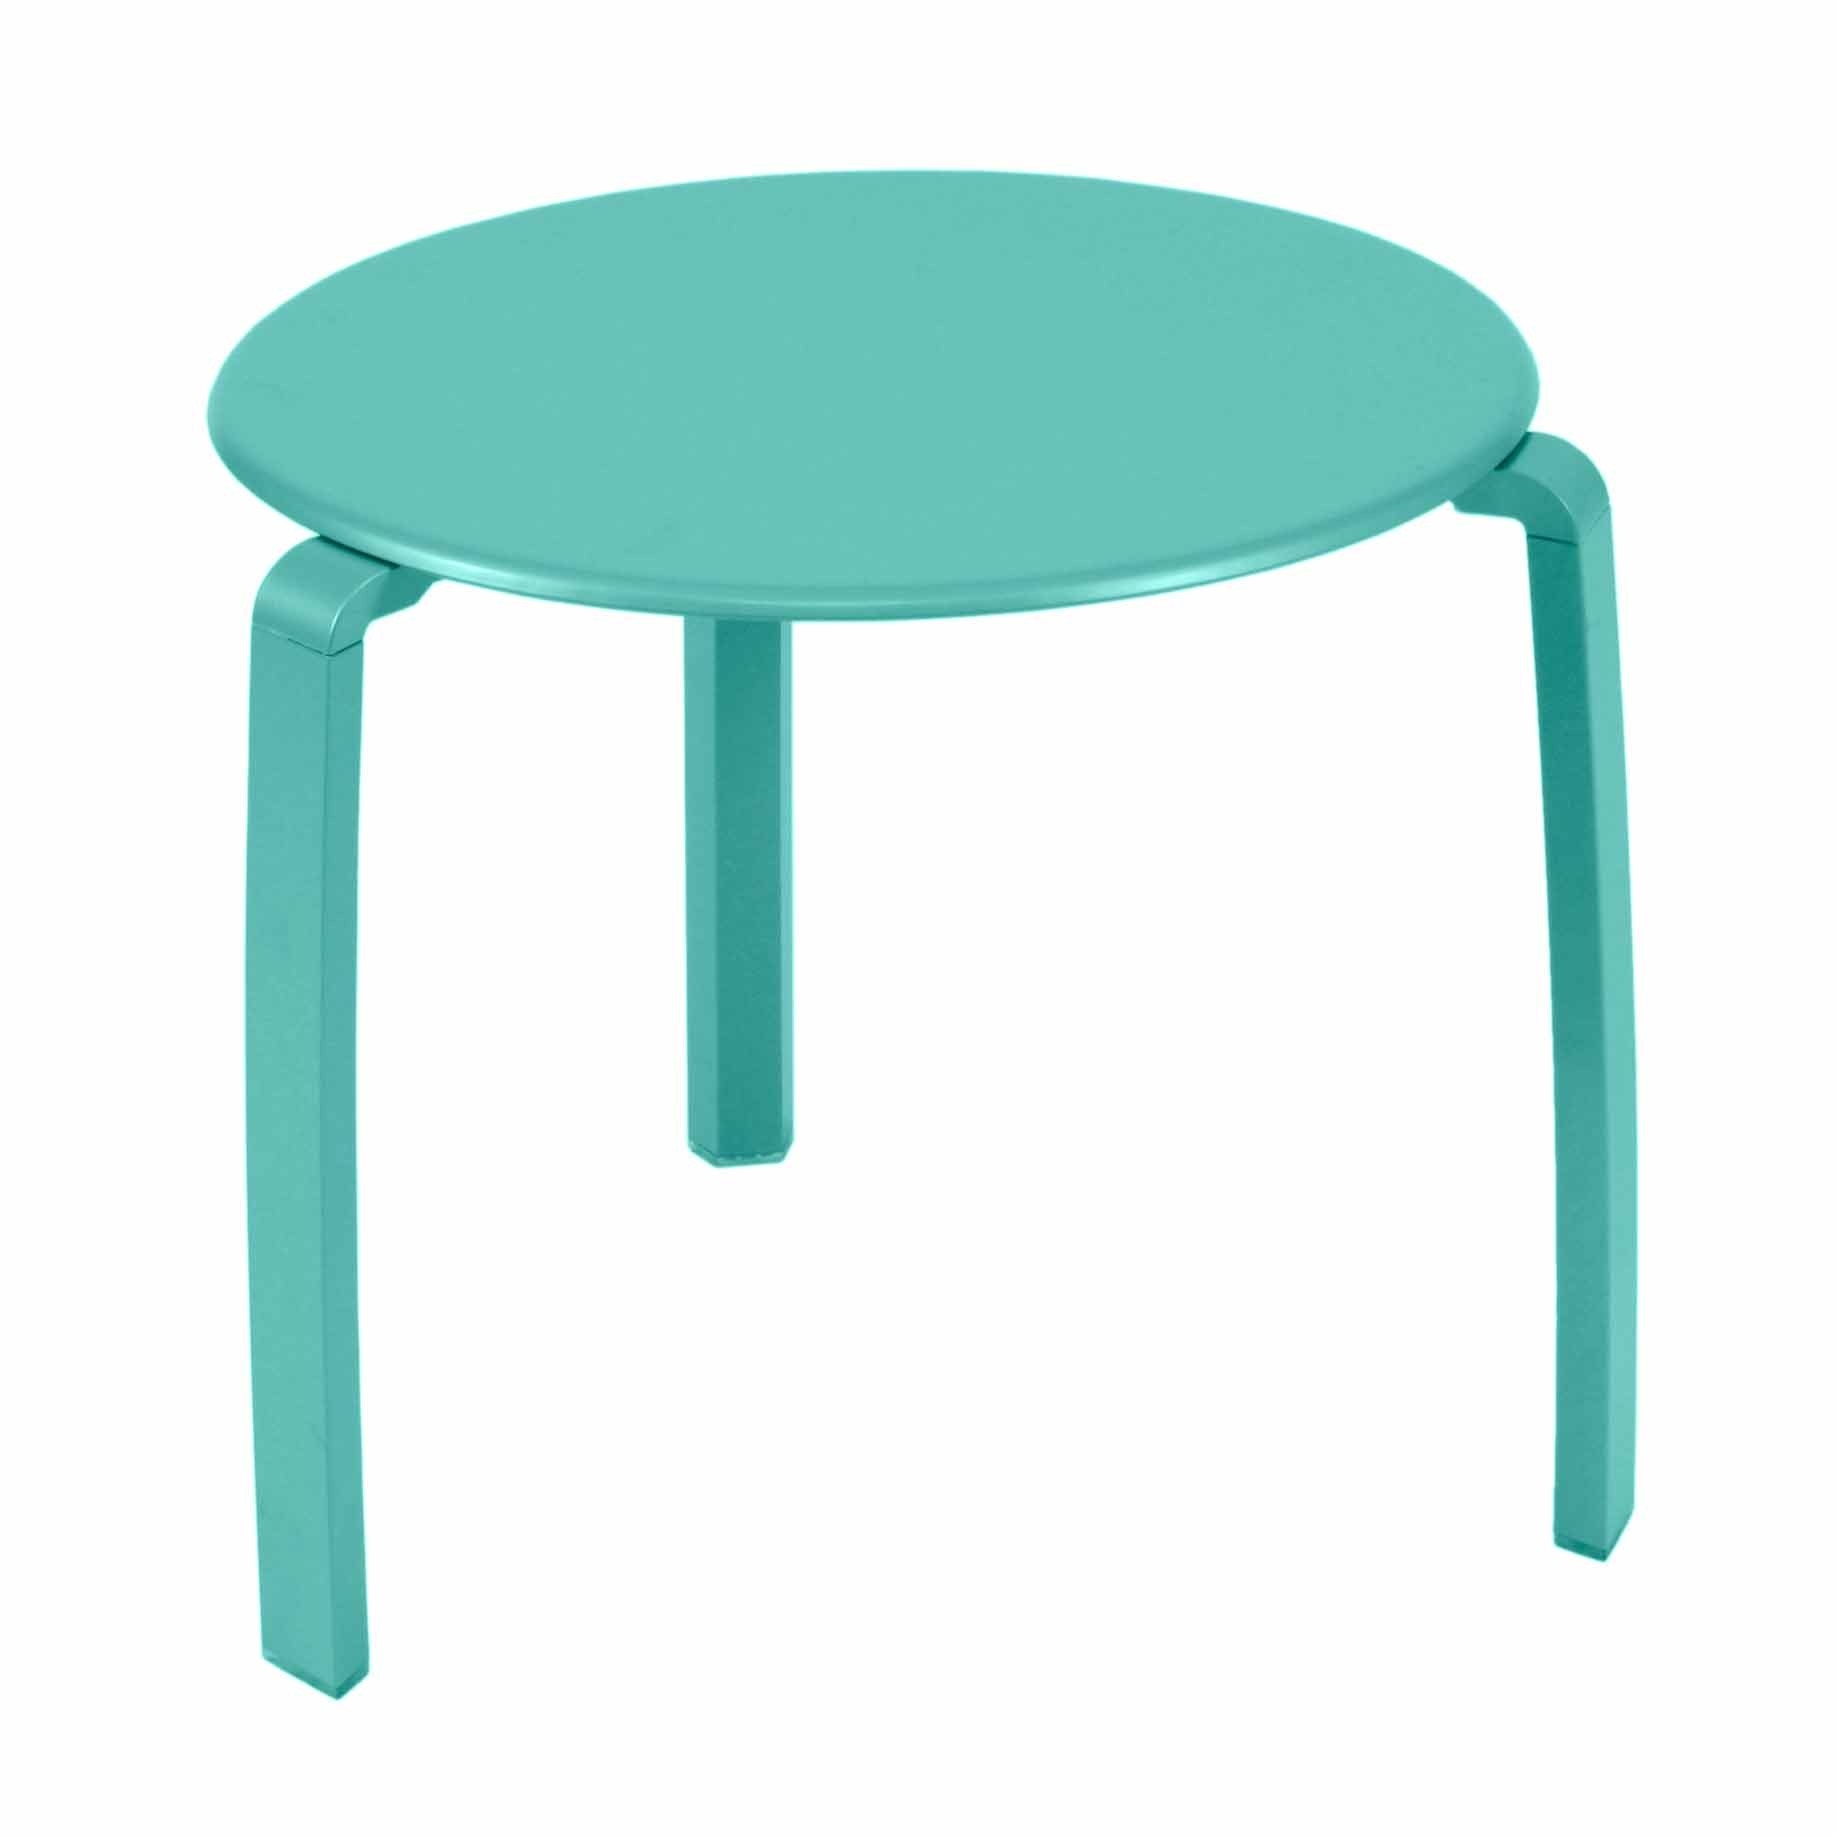 Table basse aliz de fermob bleu lagune for Table basse fermob